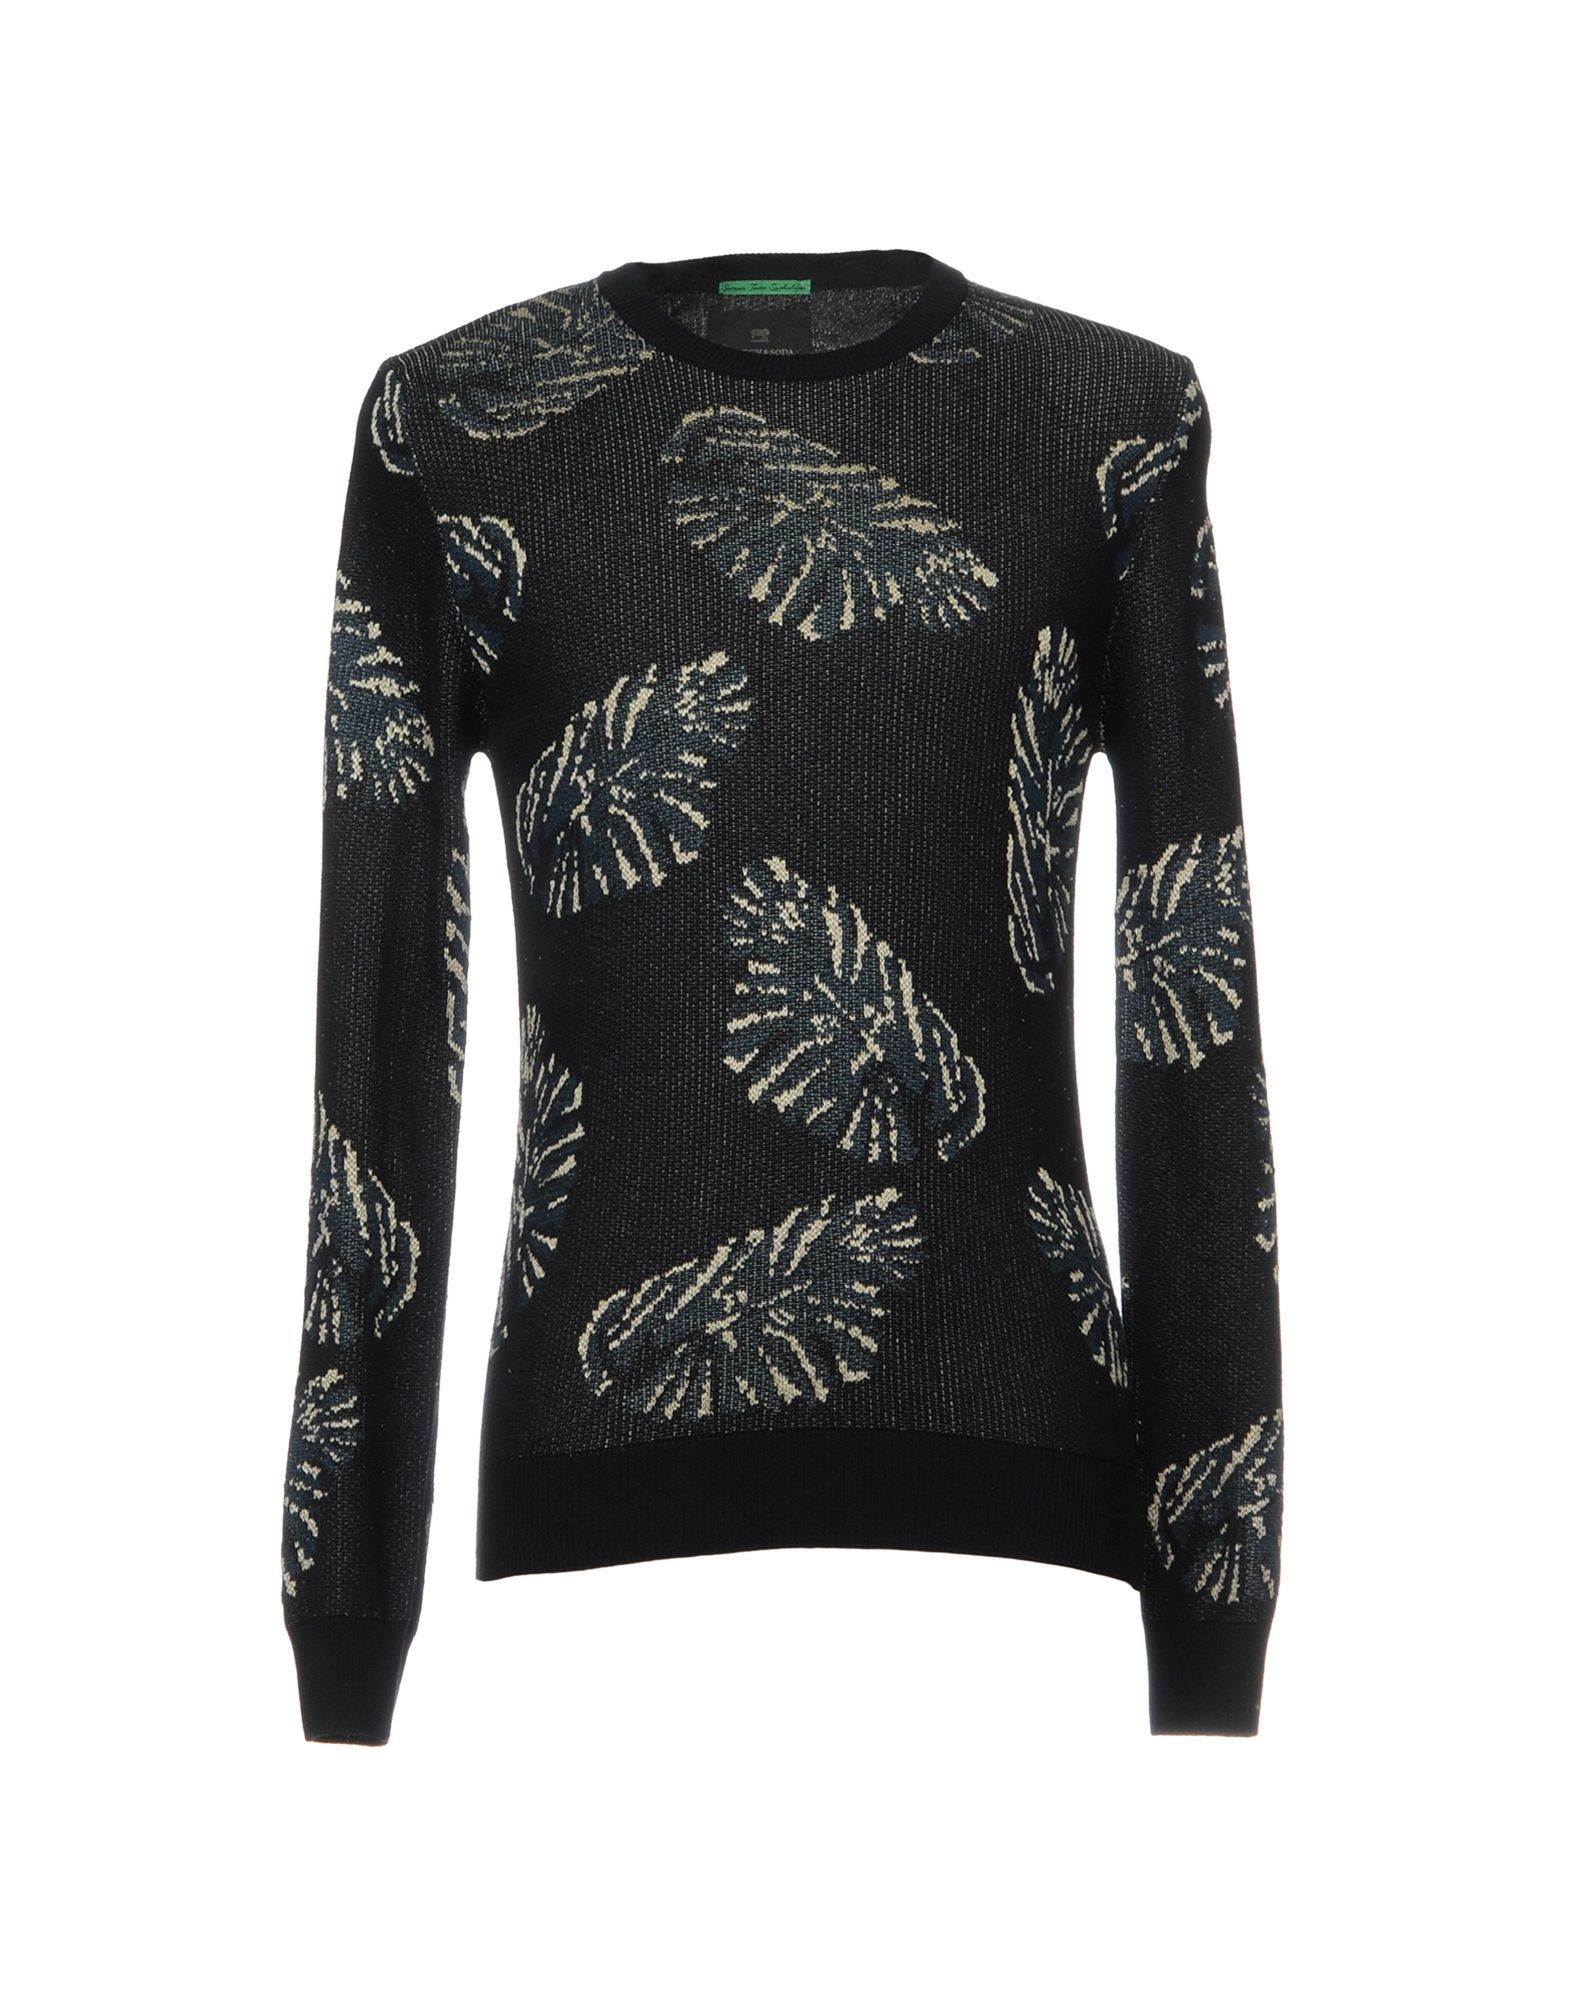 【大人気】Scotch & Soda★print pullover薄手ニット♪